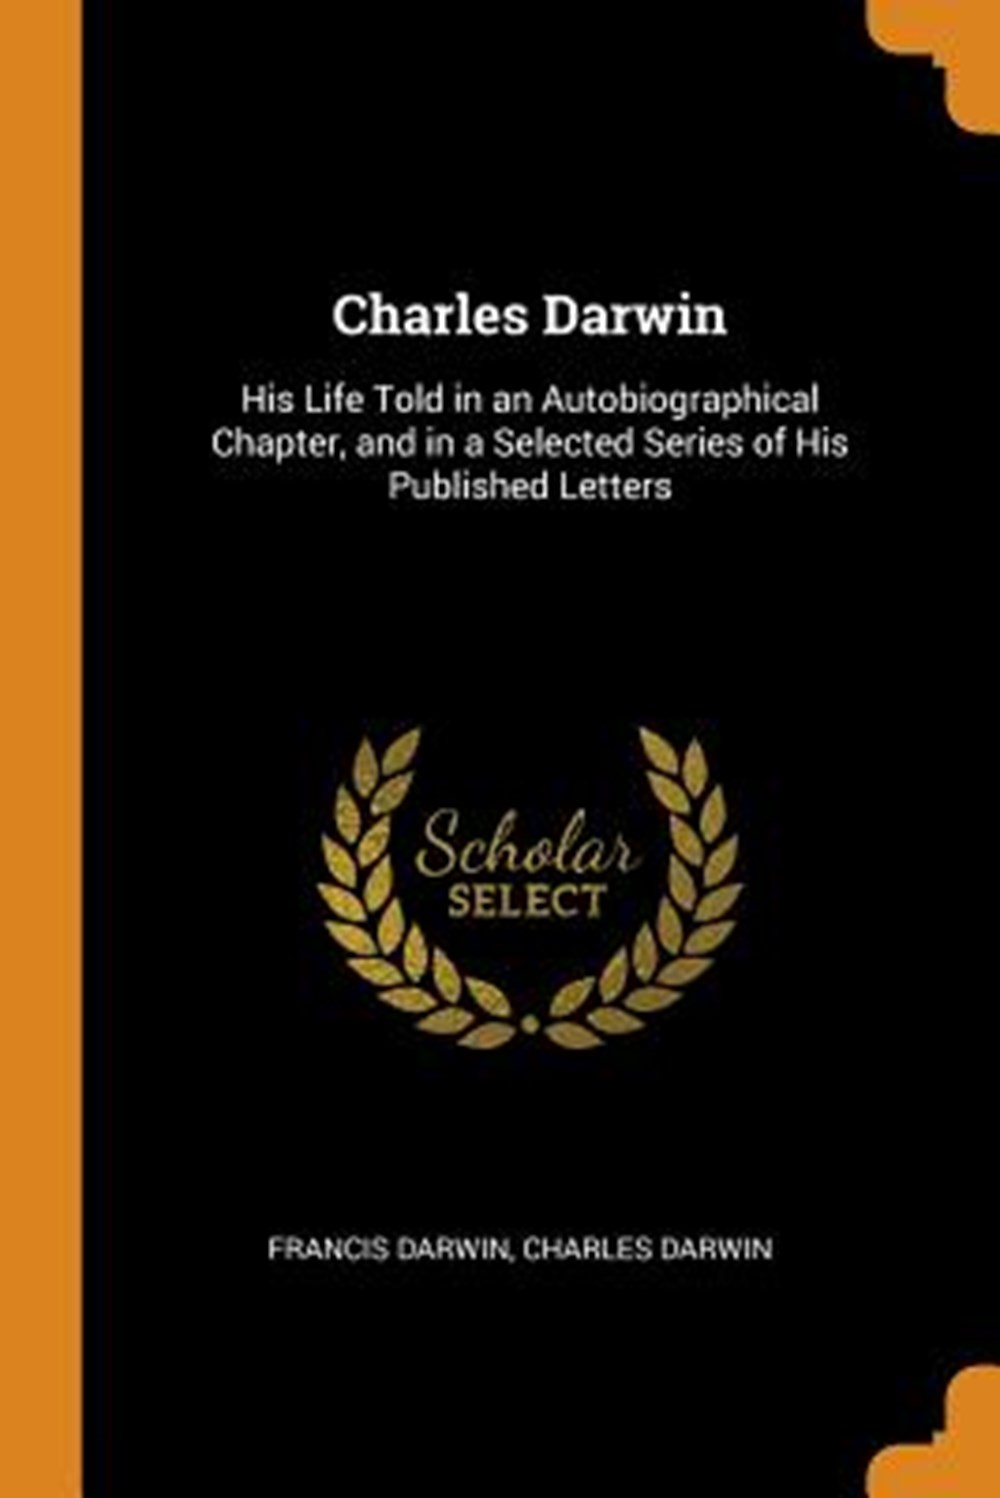 Charles Darwin His Life Told in an Autobiographical Chapter, and in a Selected Series of His Publish